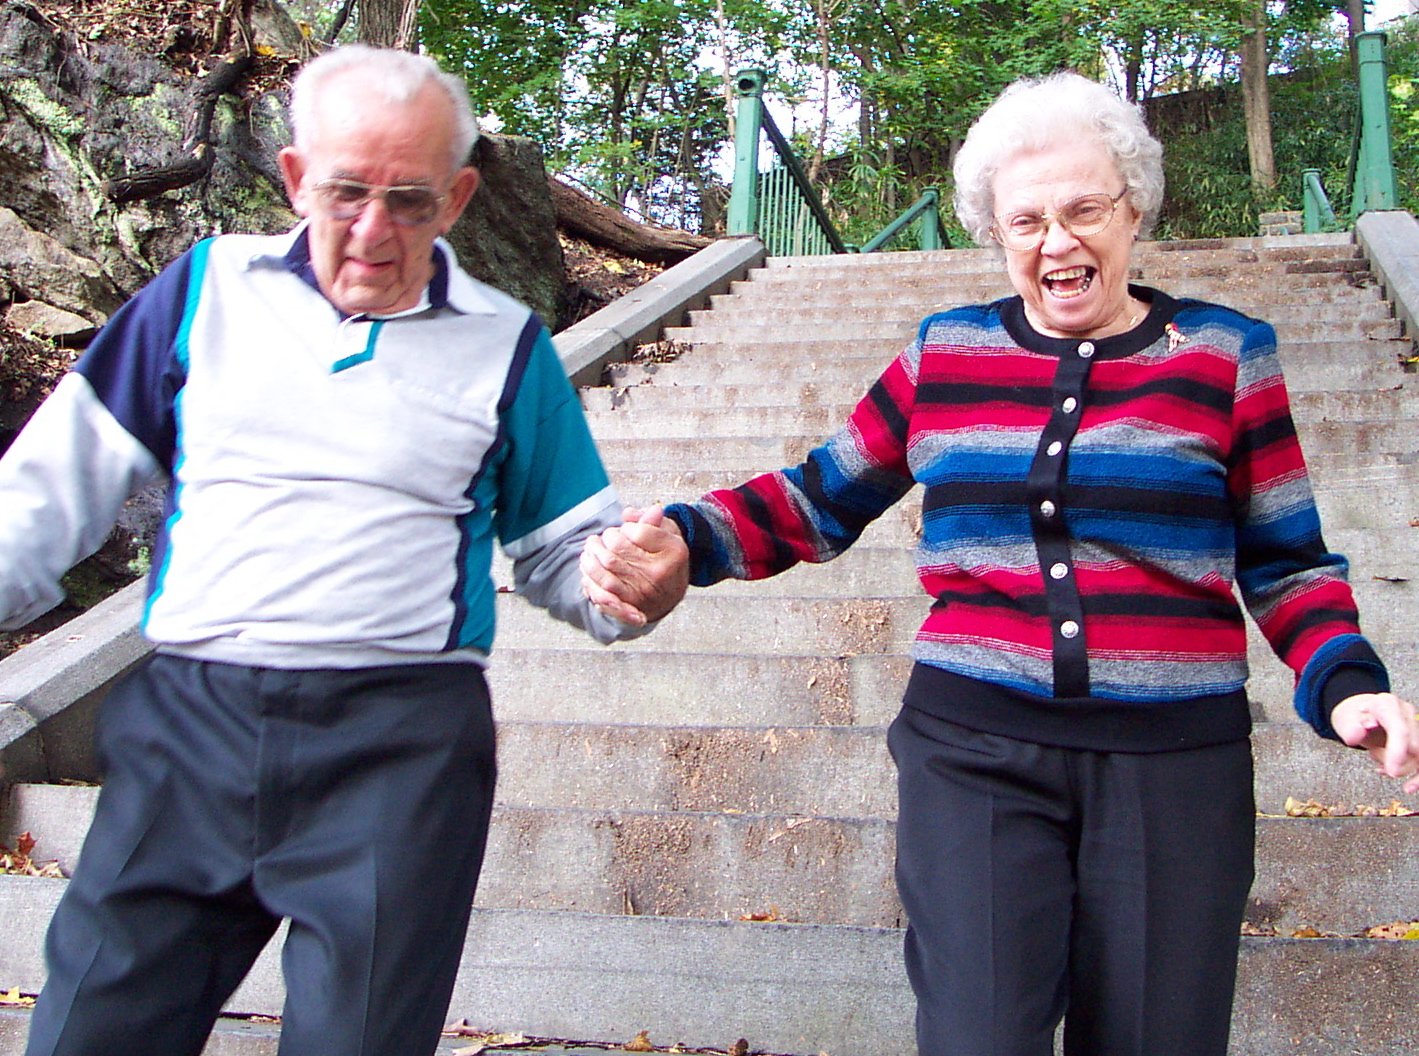 My parents, Arlene and Arthur Troutman, walking down the Hundred Steps in October 2002.